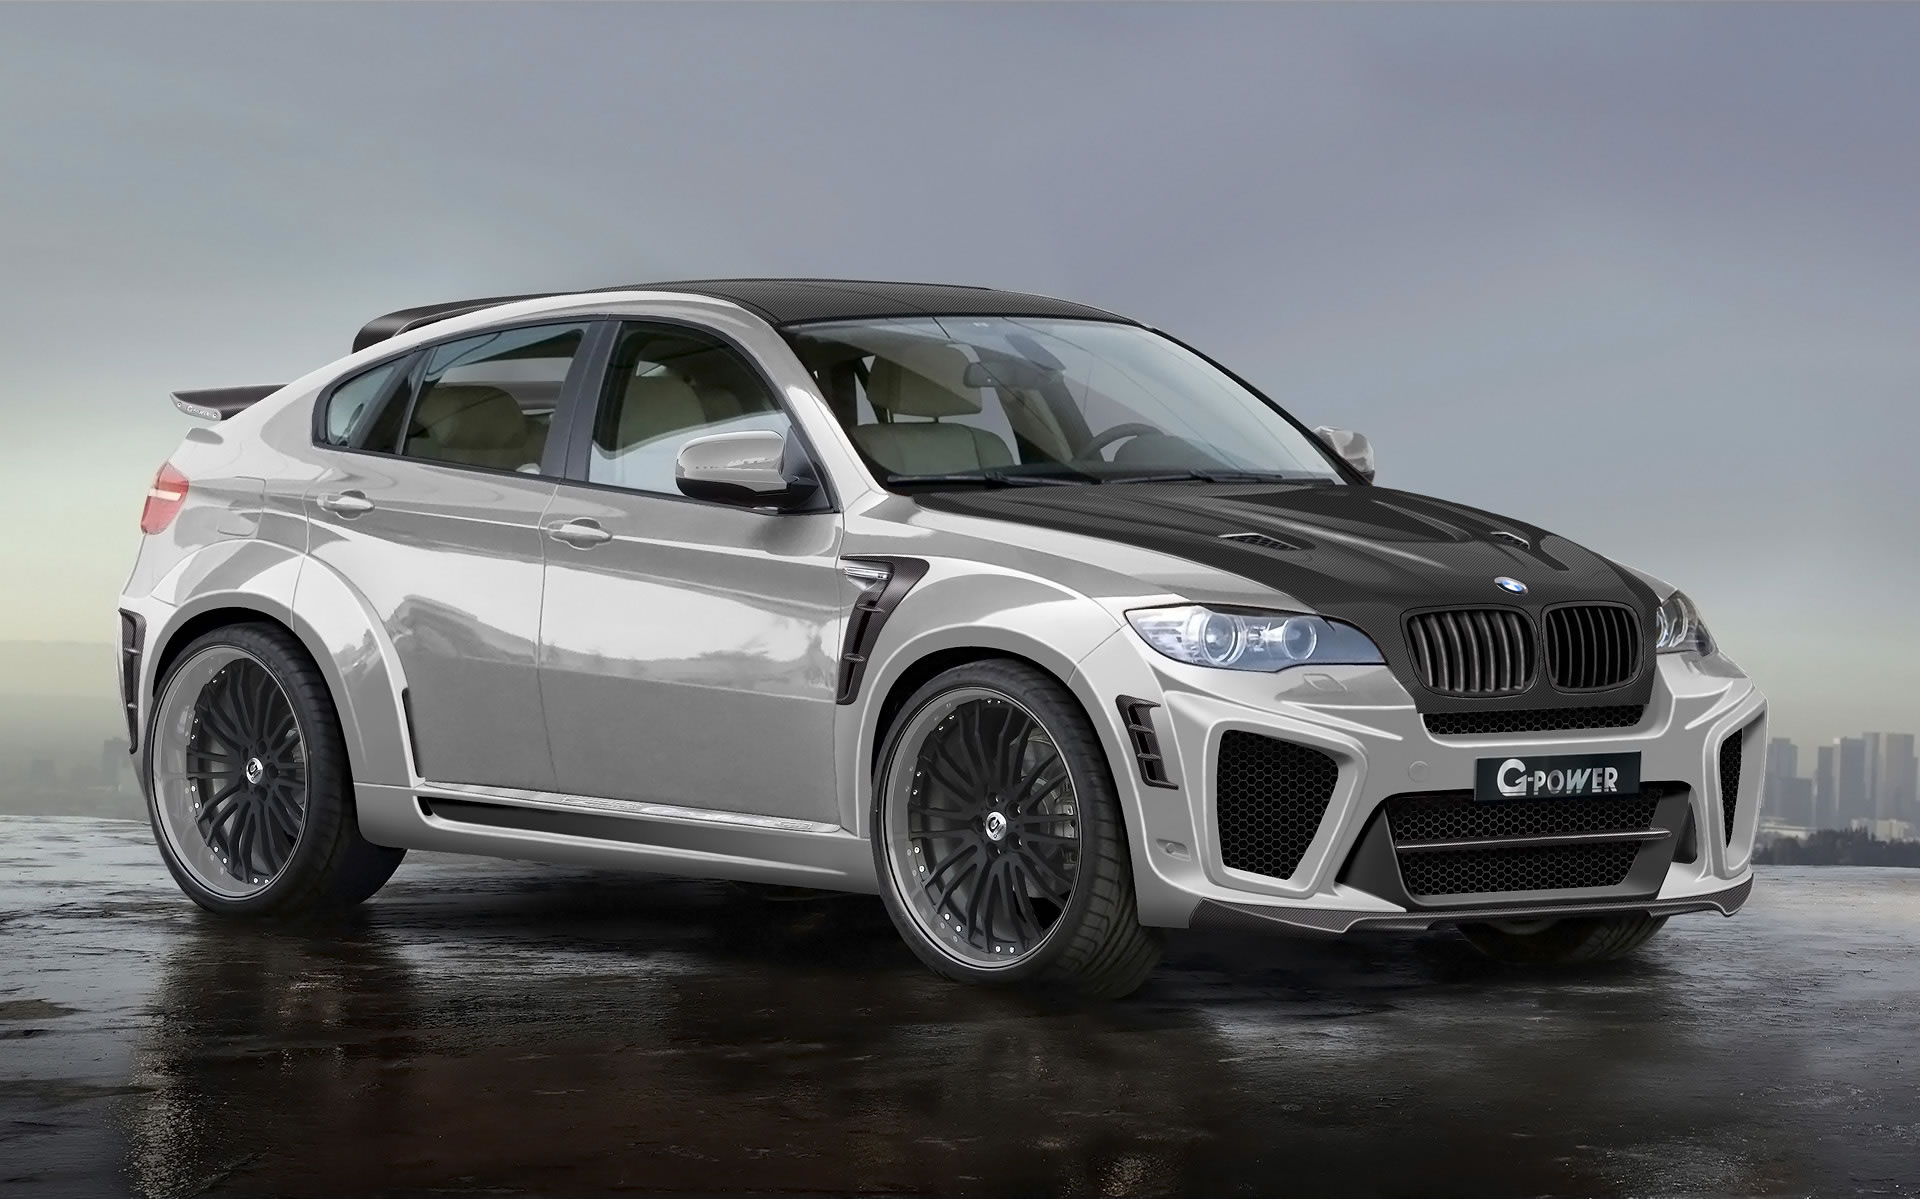 G Power Bmw X6 Typhoon Rs Ultimate Elabia De